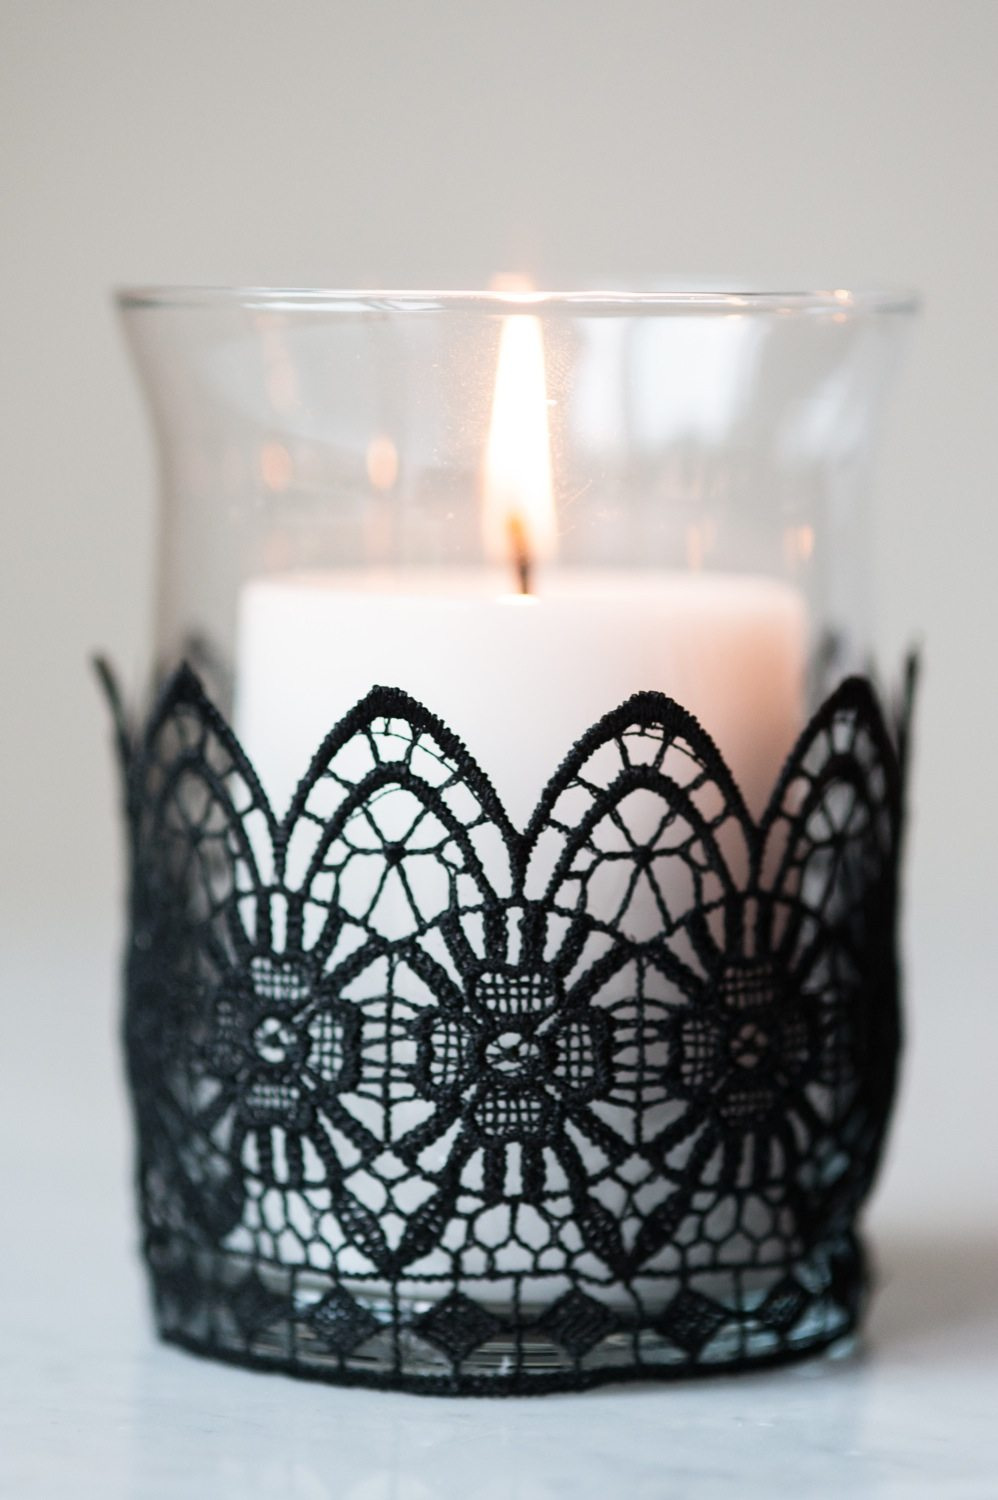 load these bad boys up with candles i personally prefer white candles with the black lace give them a light and you have instant halloween decor - Diy Candle Holders